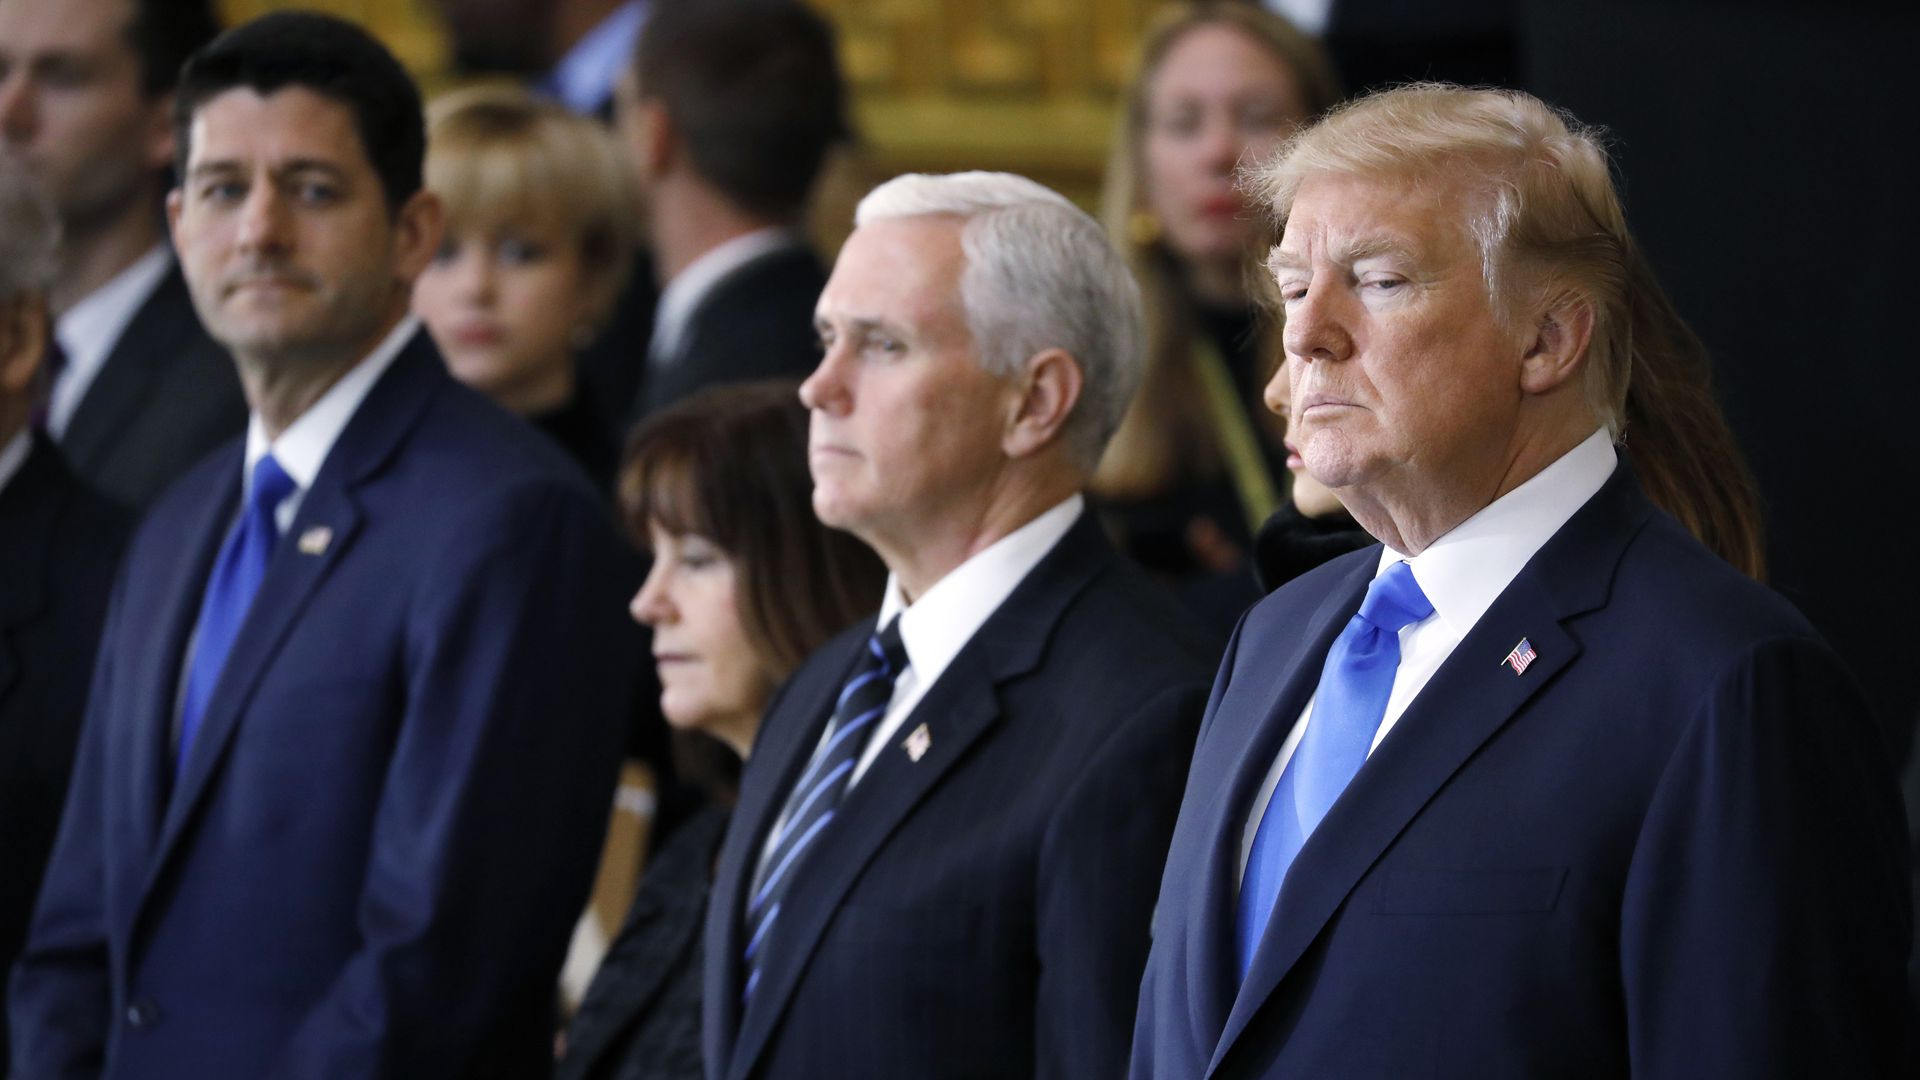 Paul Ryan looking over at Mike Pence and Donald Trump, who is looking down.